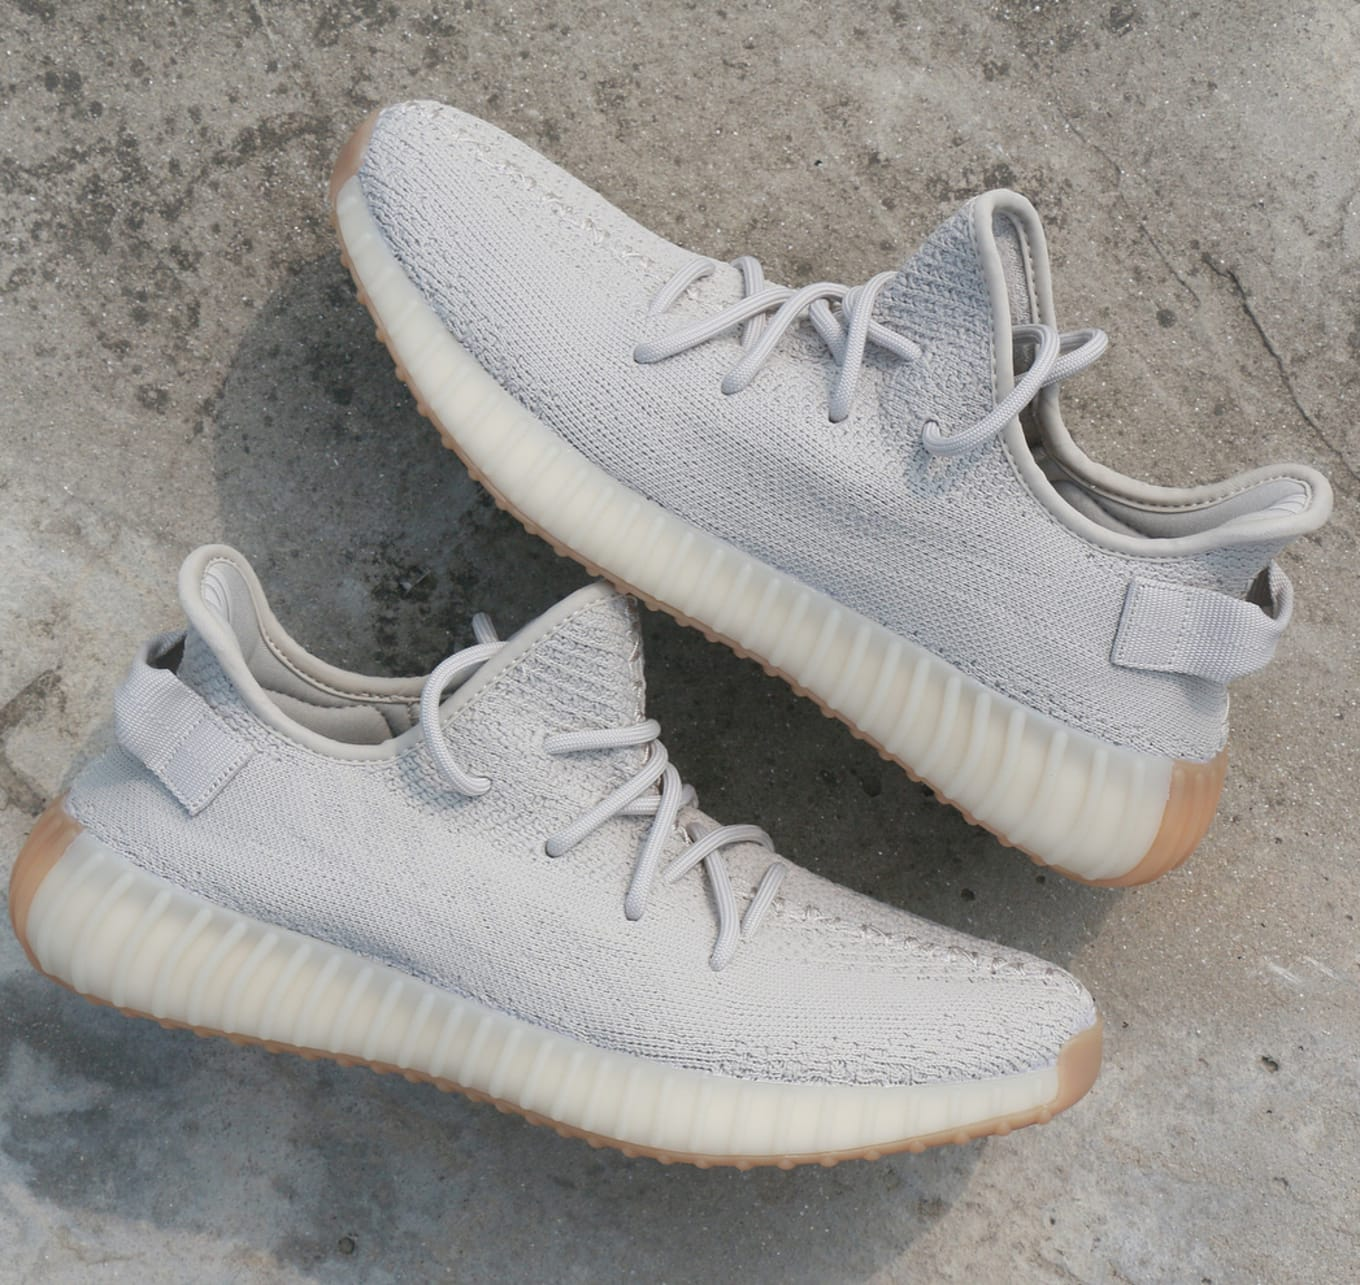 76f2d0718a42f Adidas Yeezy Releases Delayed Due to Reported Factory Issues